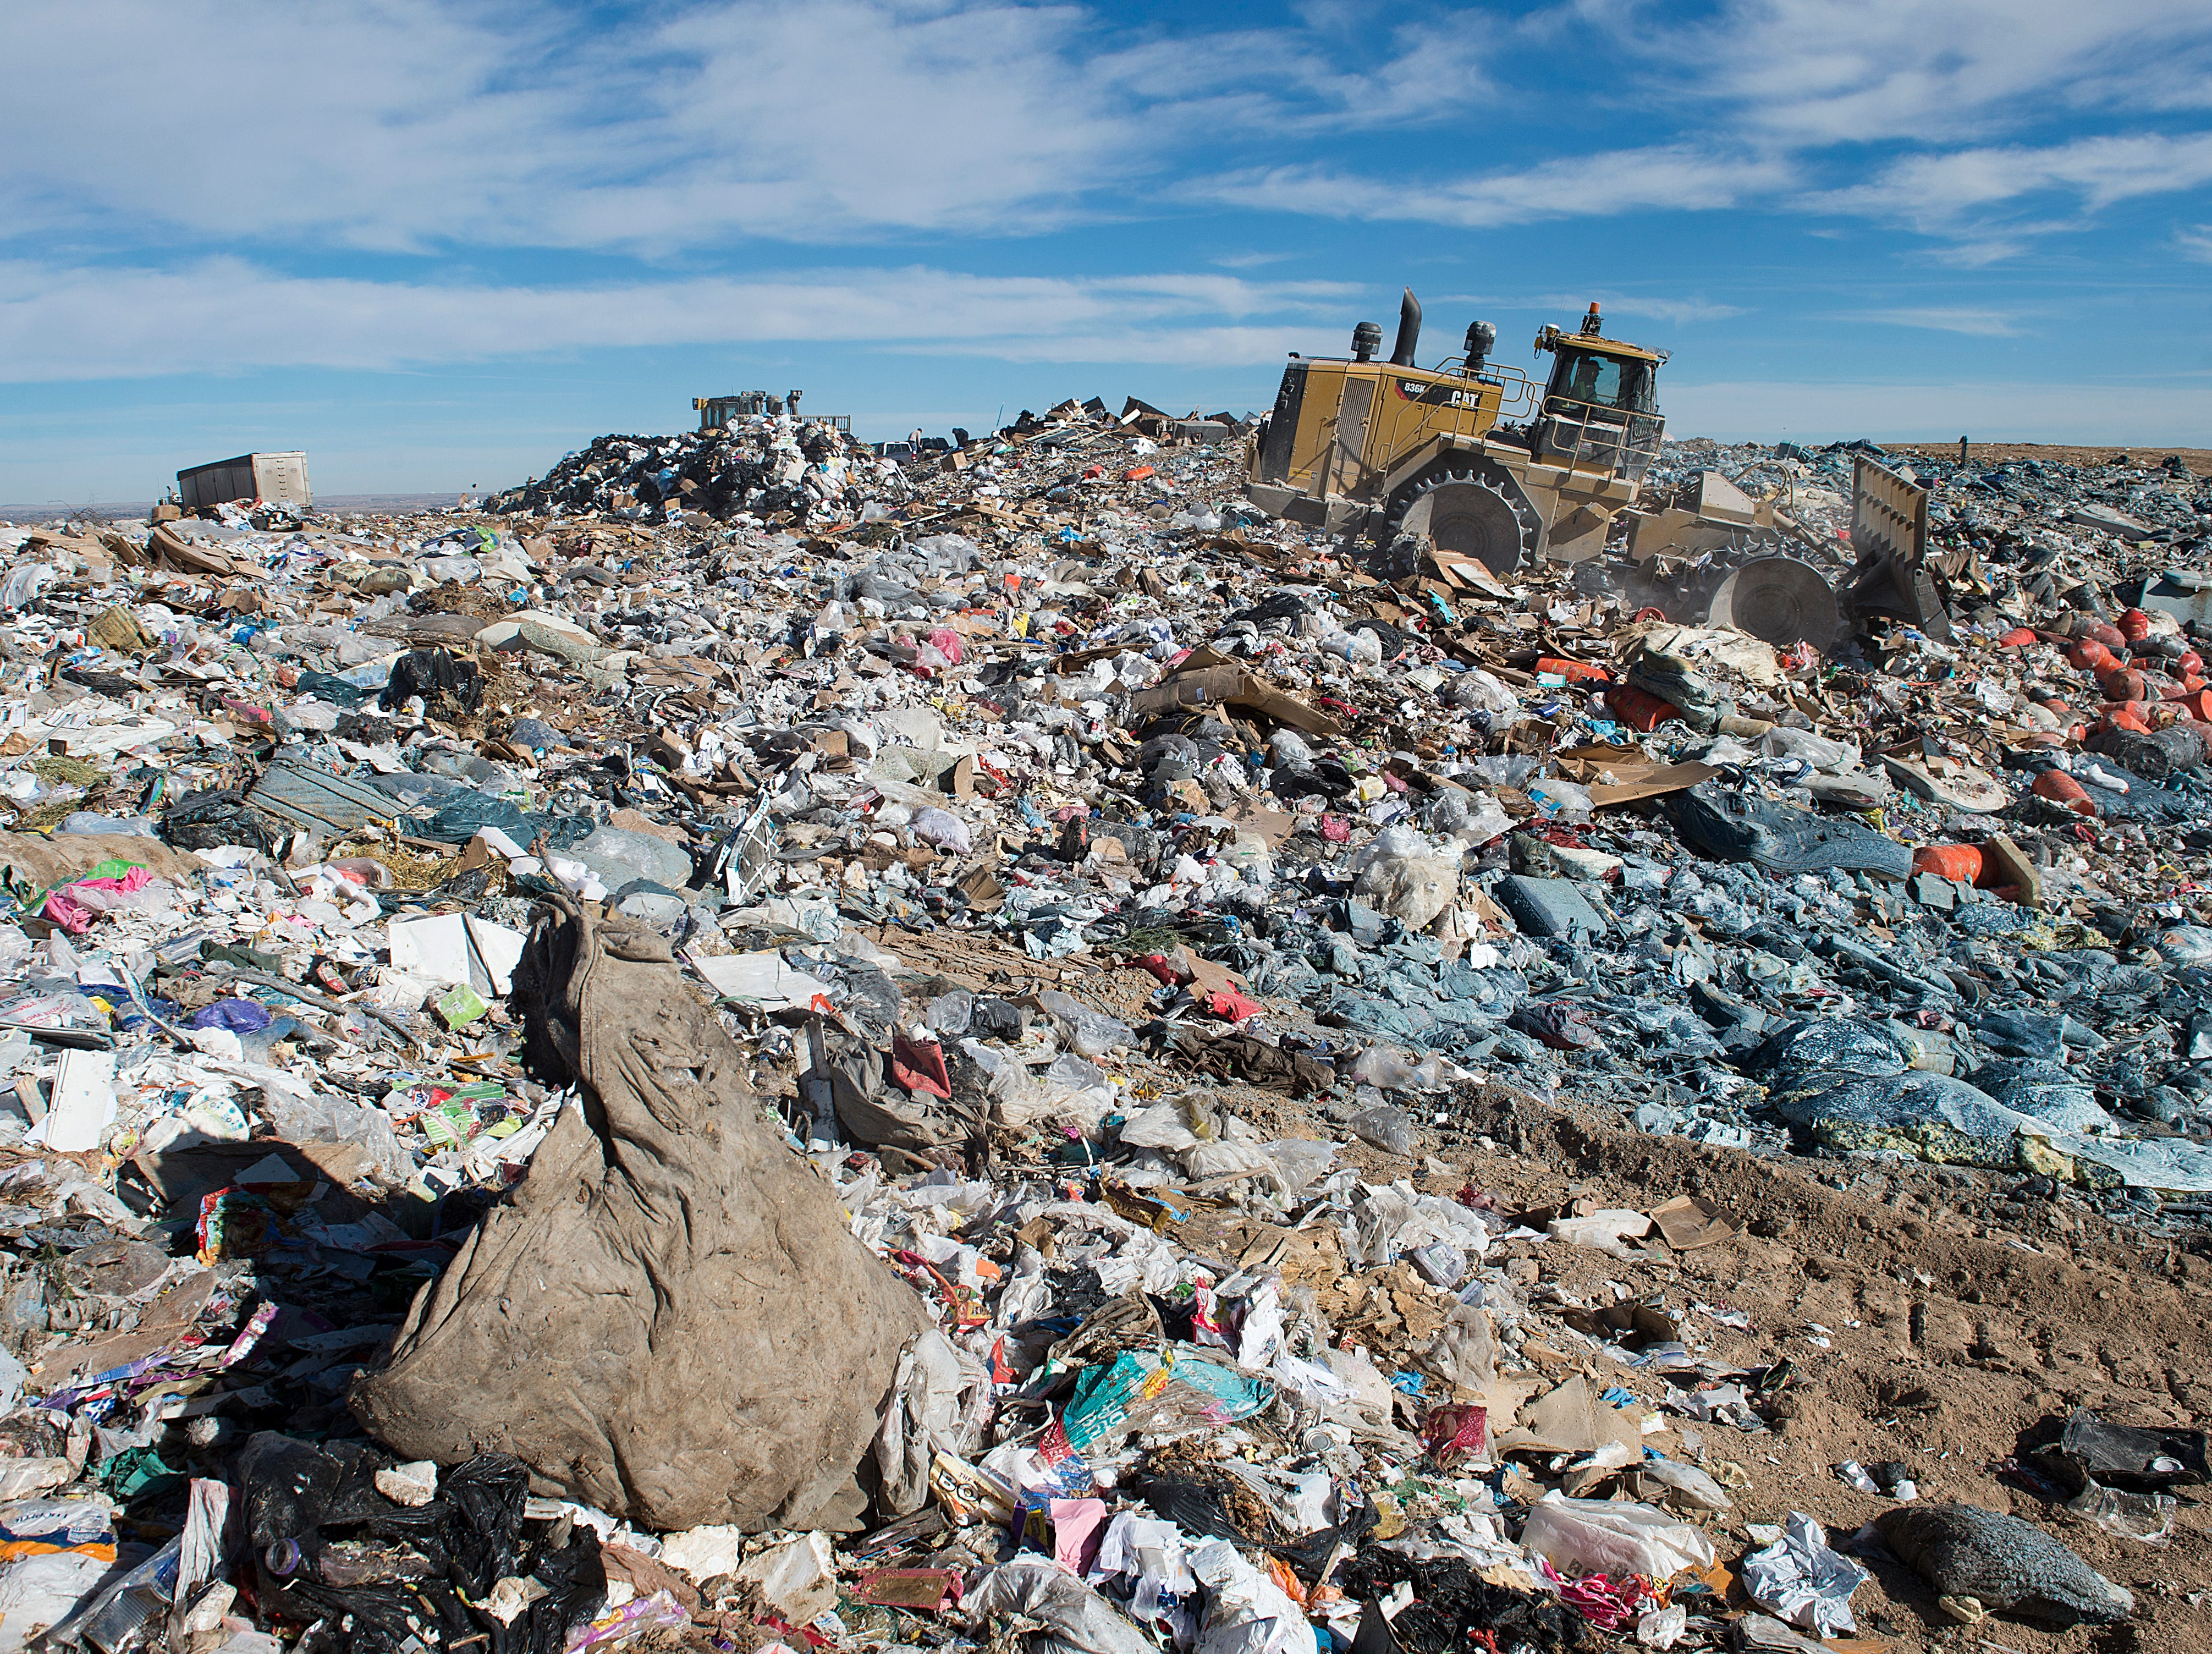 A bulldozer works to compact municipal waste at the Larimer County Landfill on Tuesday, January 15, 2019.